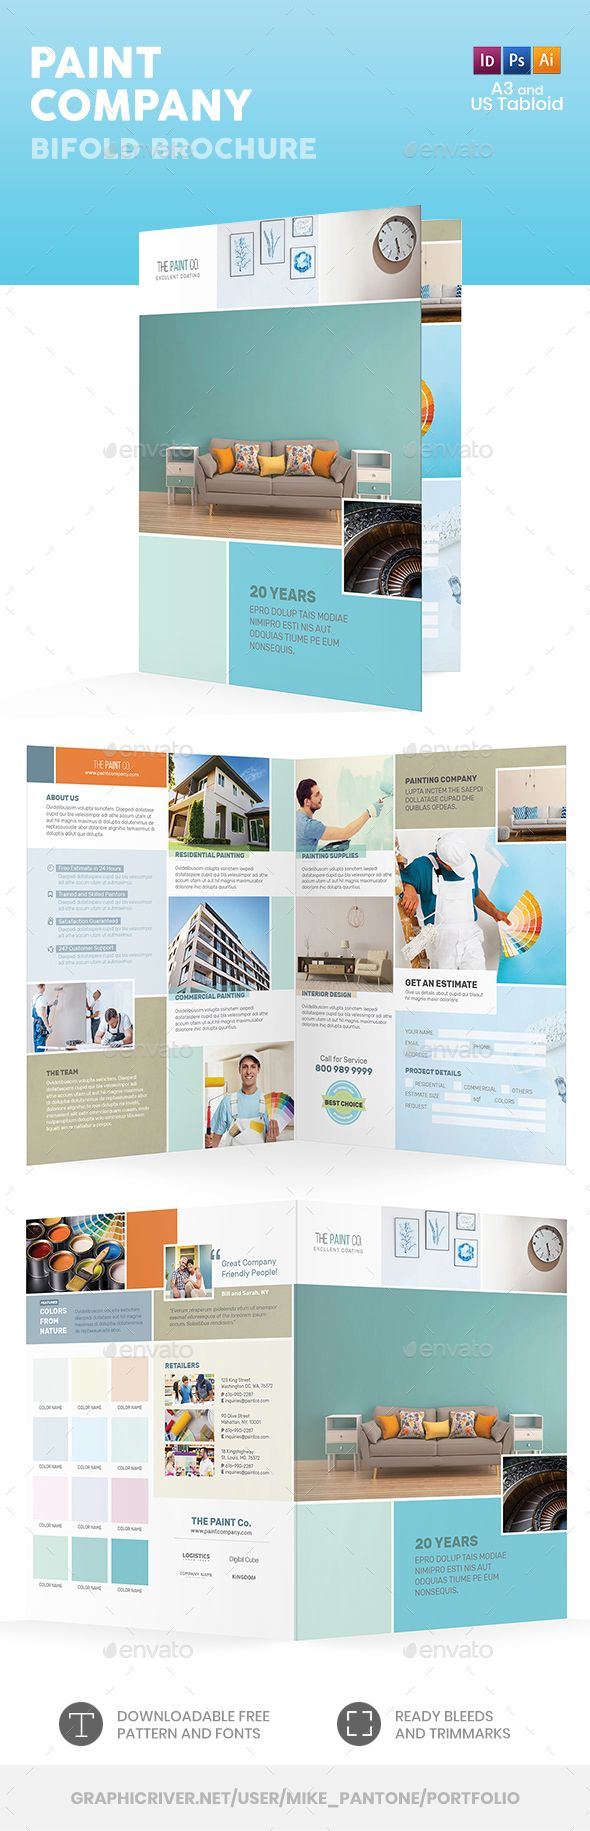 paint company bifold halffold brochure informational